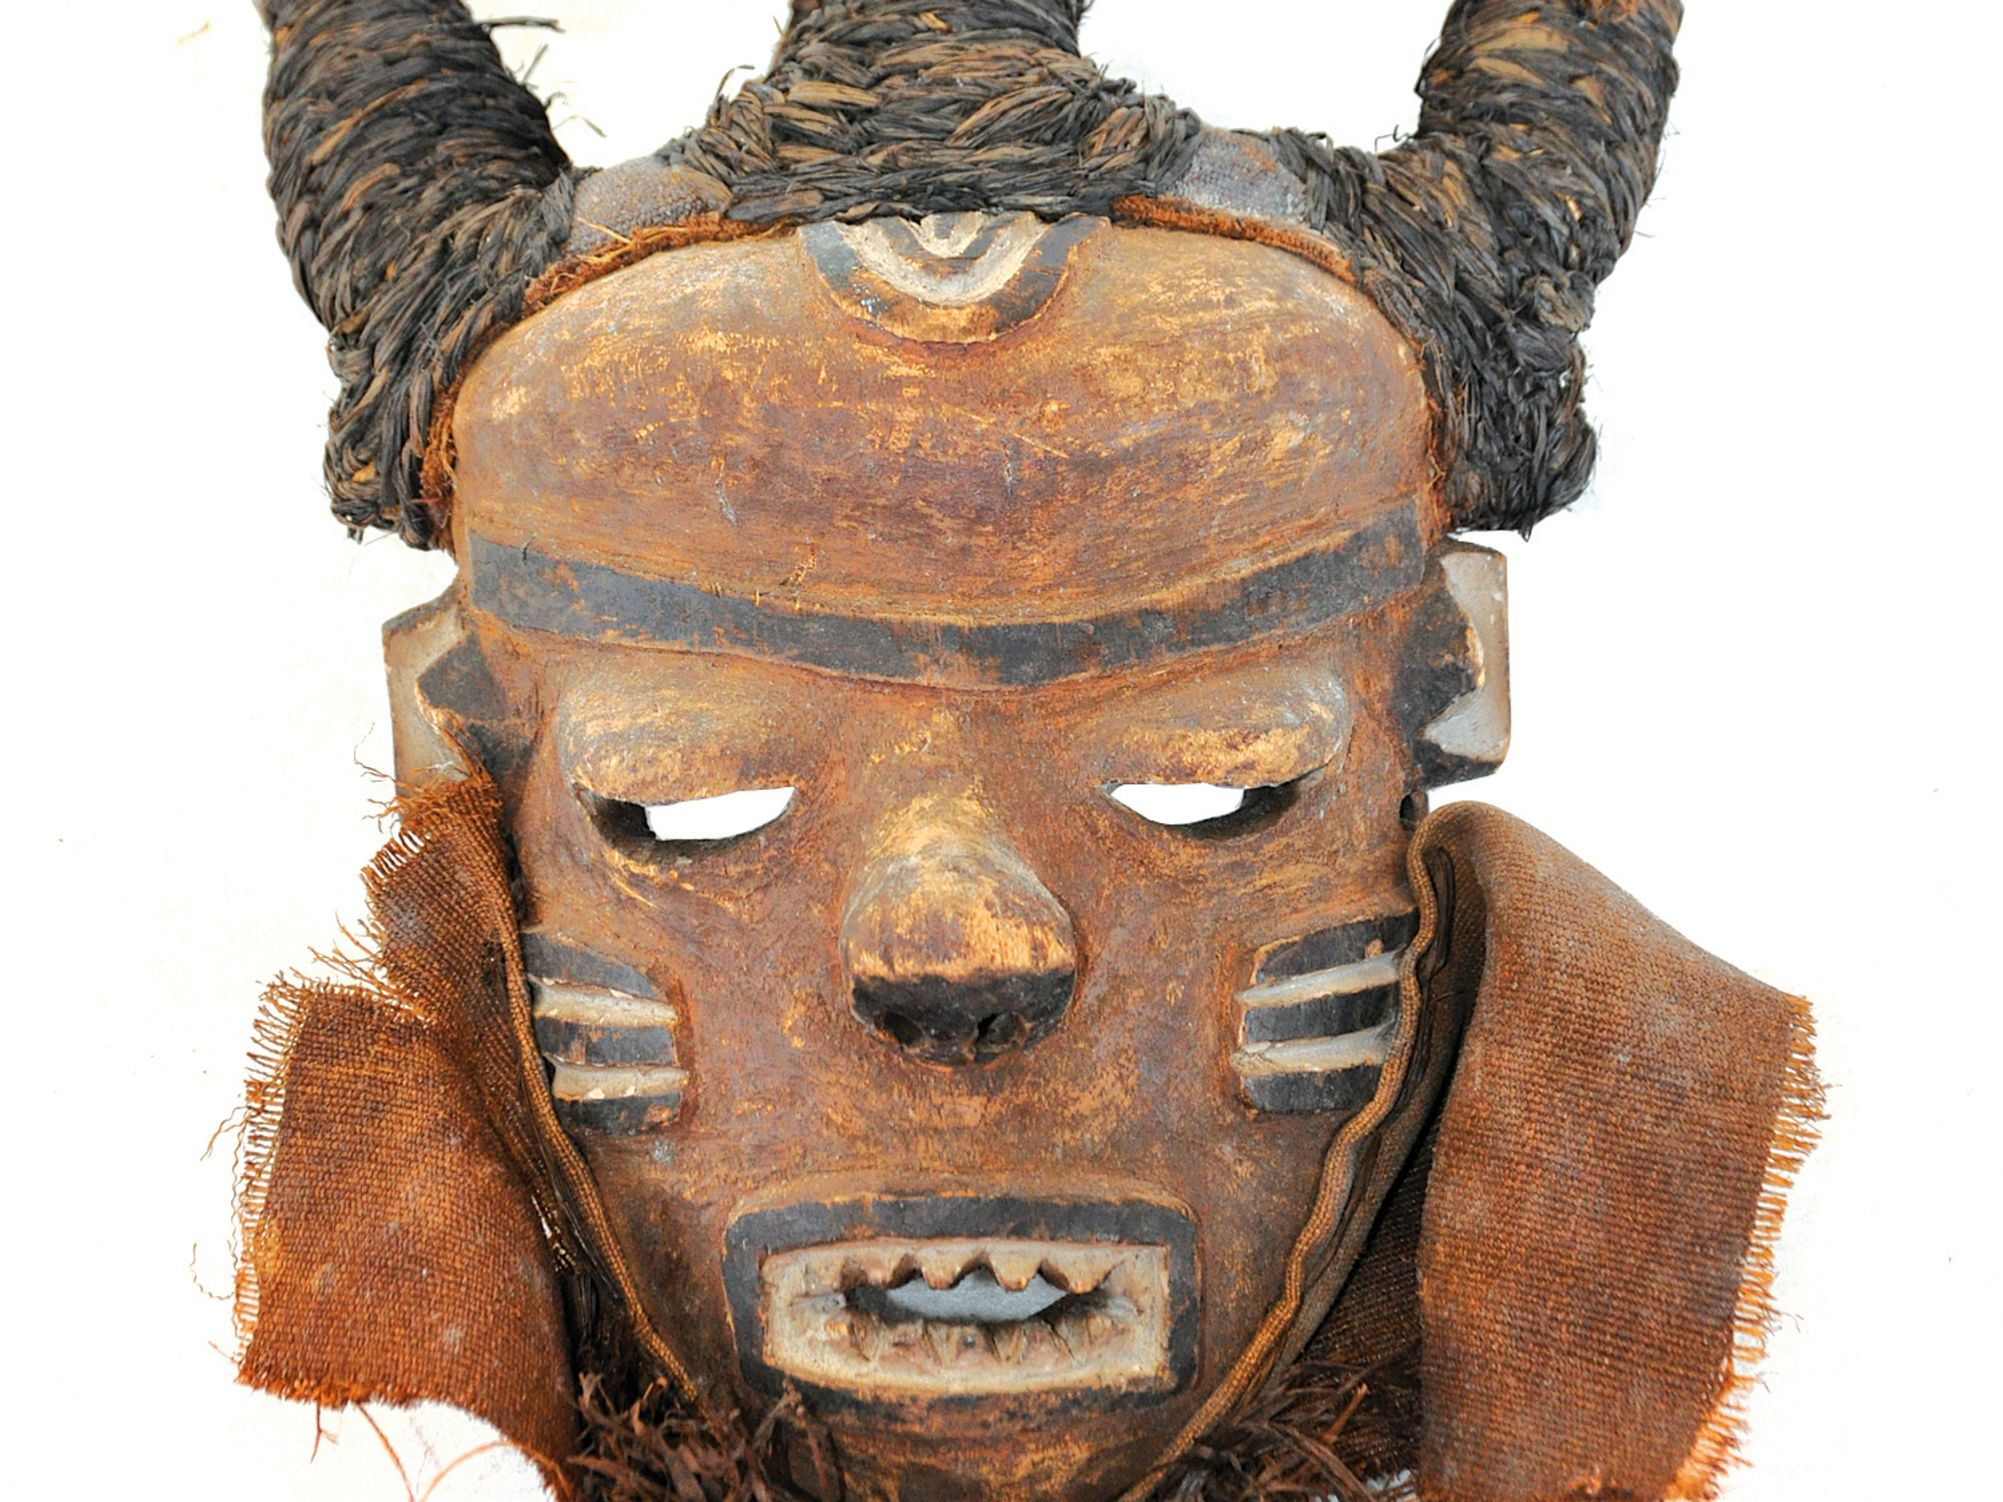 1216 ice house hoarder african art collector mask t9jzrp